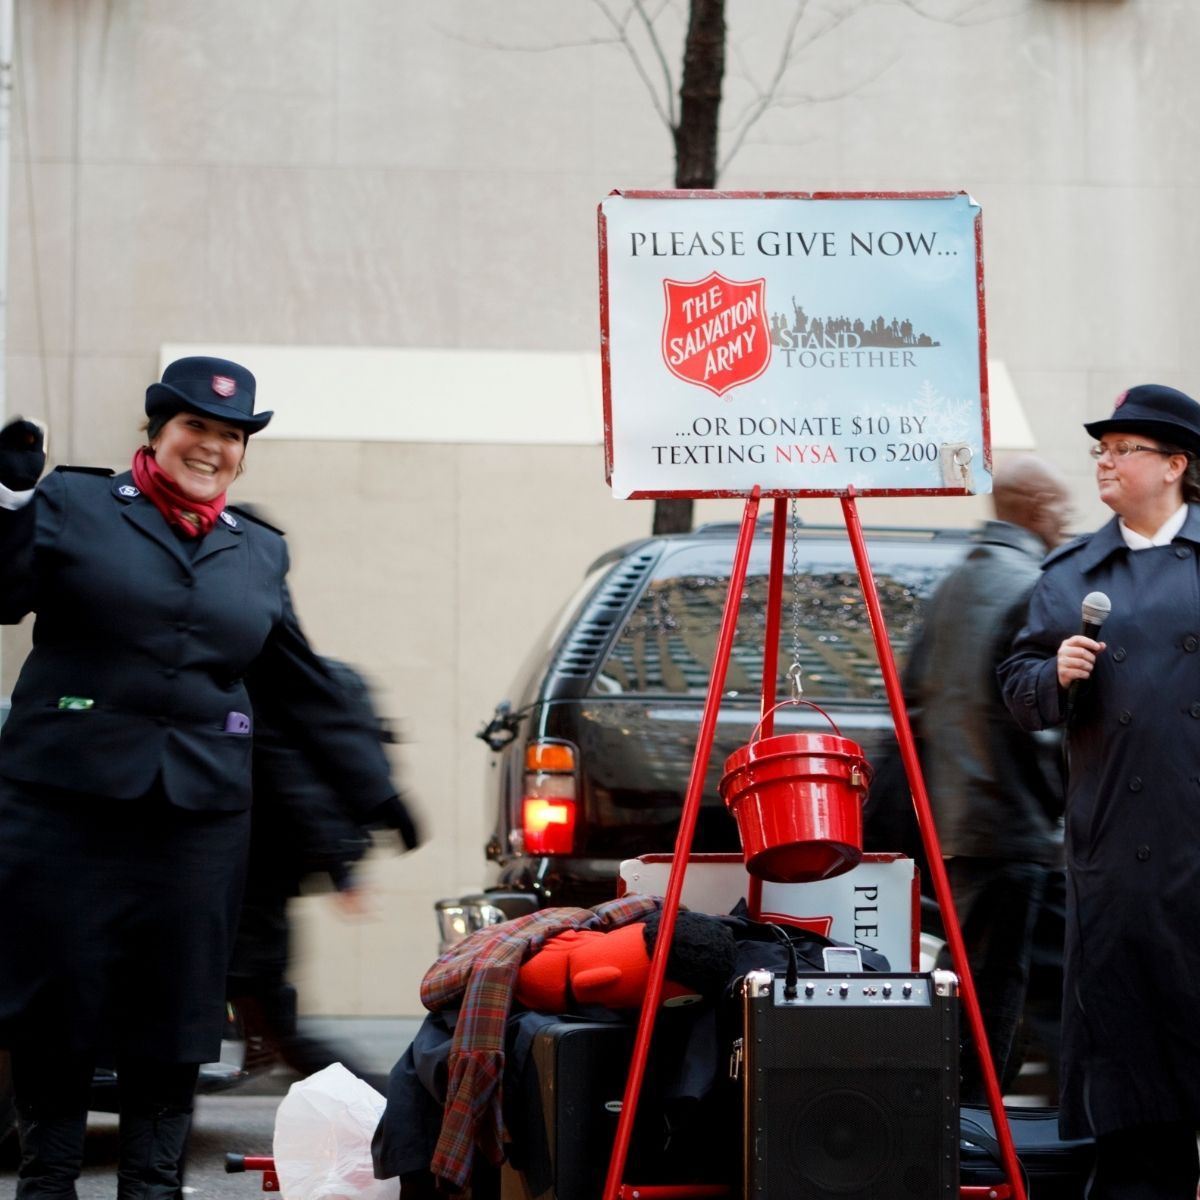 salvation army donation setup outside grocery store